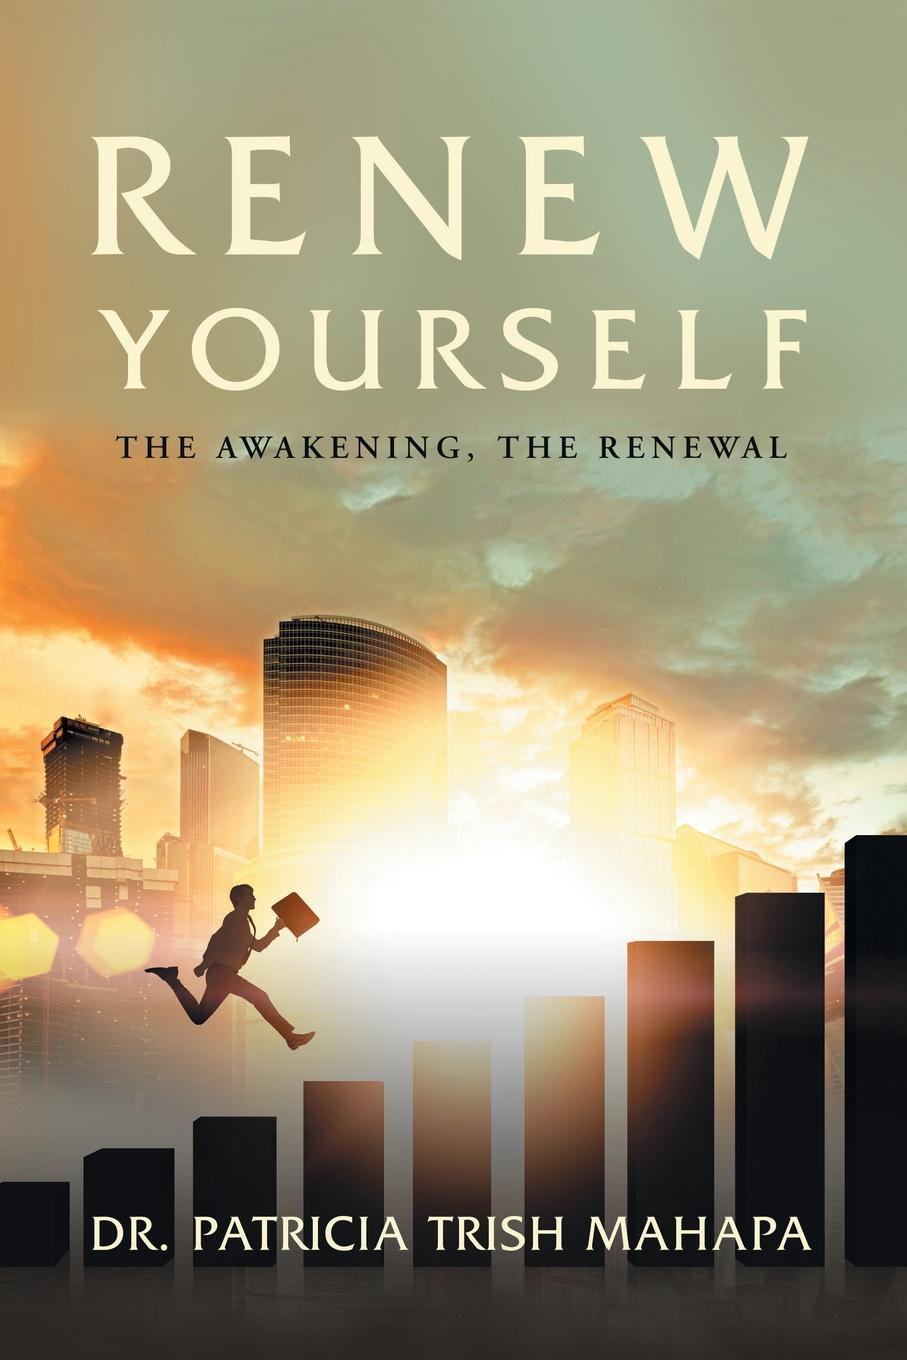 лучшая цена Dr. Patricia Trish Mahapa Renew Yourself. The Awakening, the Renewal